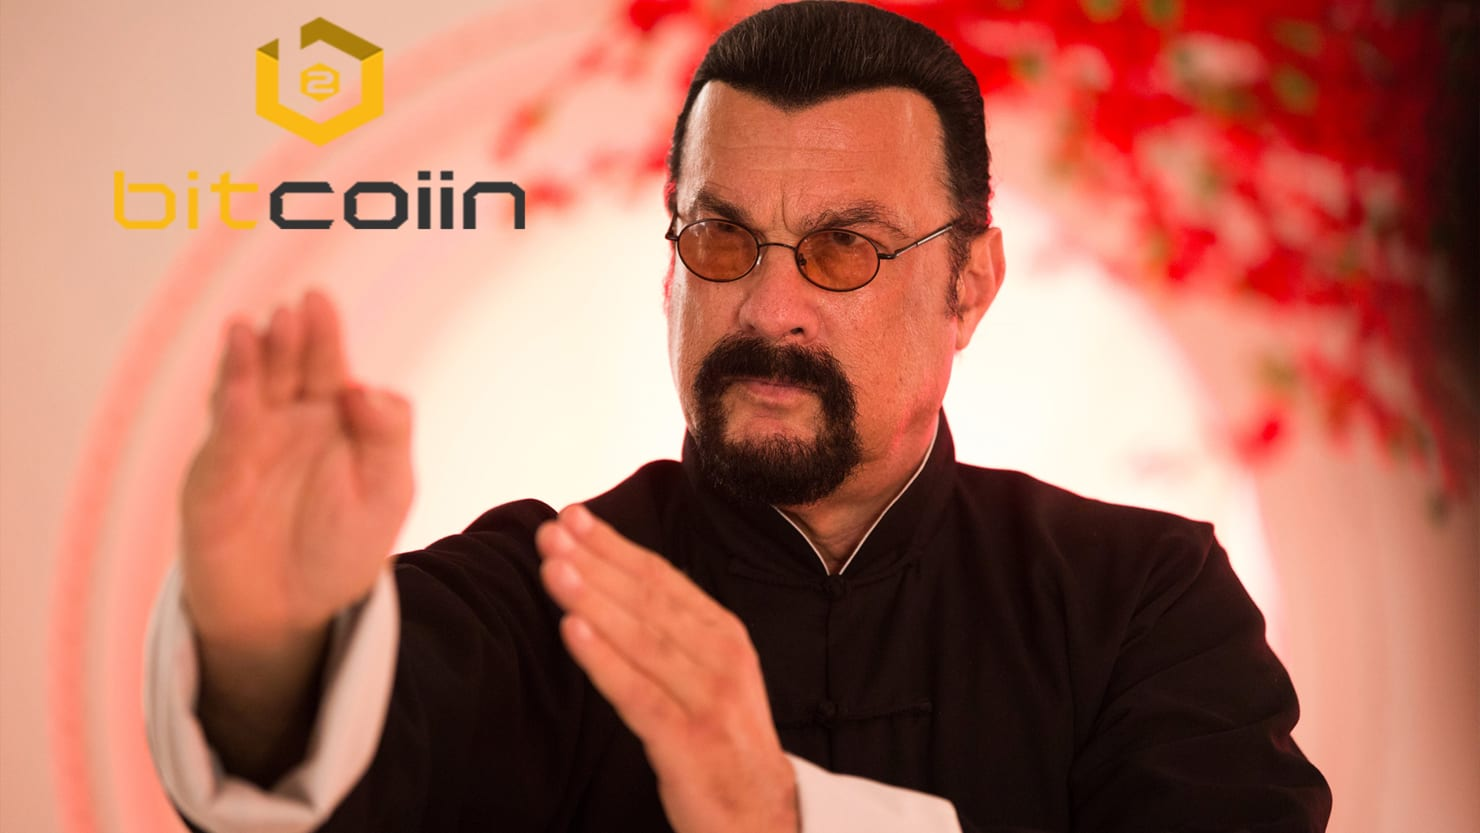 Steven Seagal, a Missing Non-public Peep, and an Alleged Crypto Fraud